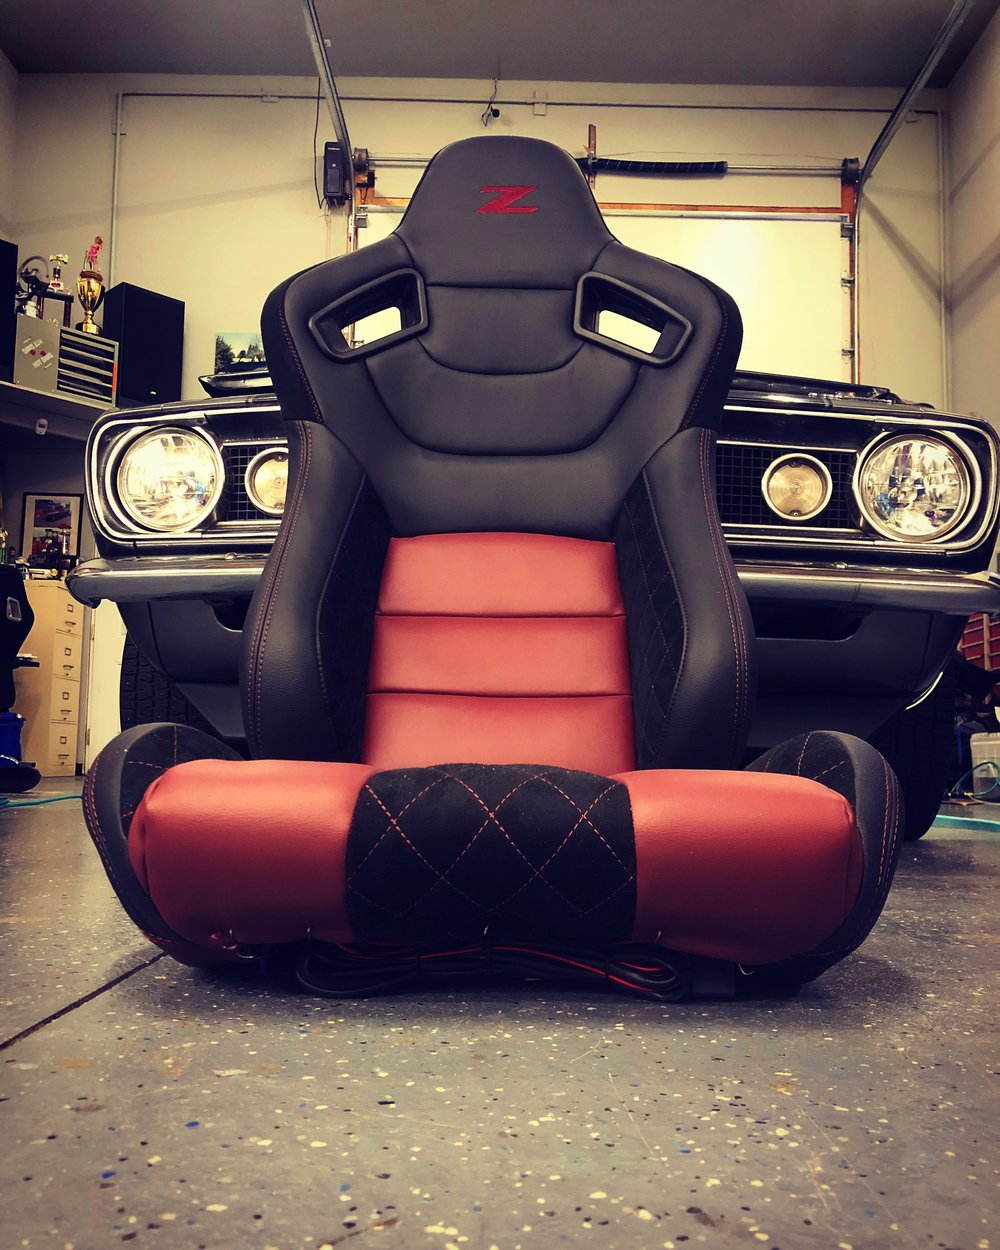 Customize your seats with  a seat kit or through our custom upholstery services.  Red and black leather with  black high end microsuede and red diamond stitching.